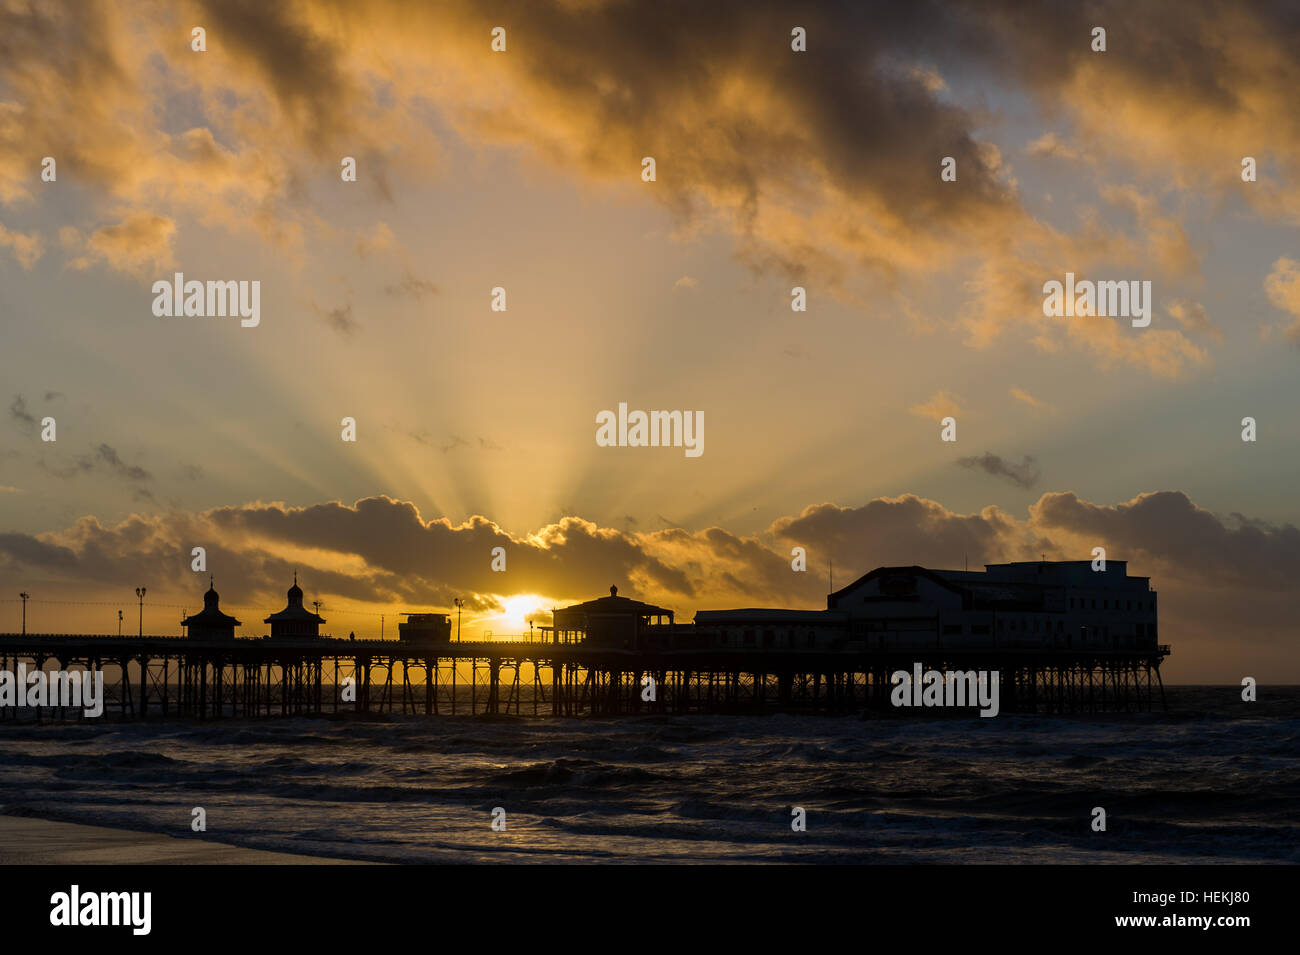 blackpool-uk-22nd-dec-2016-the-sun-sets-